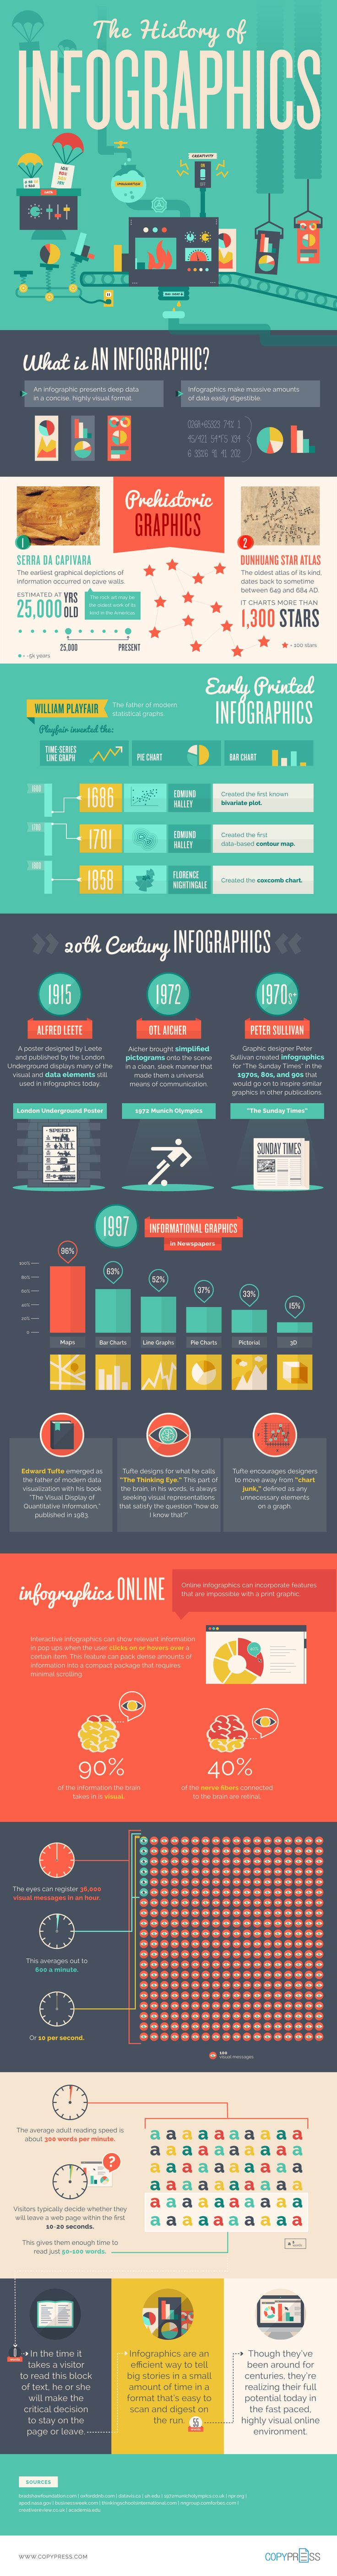 Learn the History of Infographics the Best Way Possible... With an Infographic